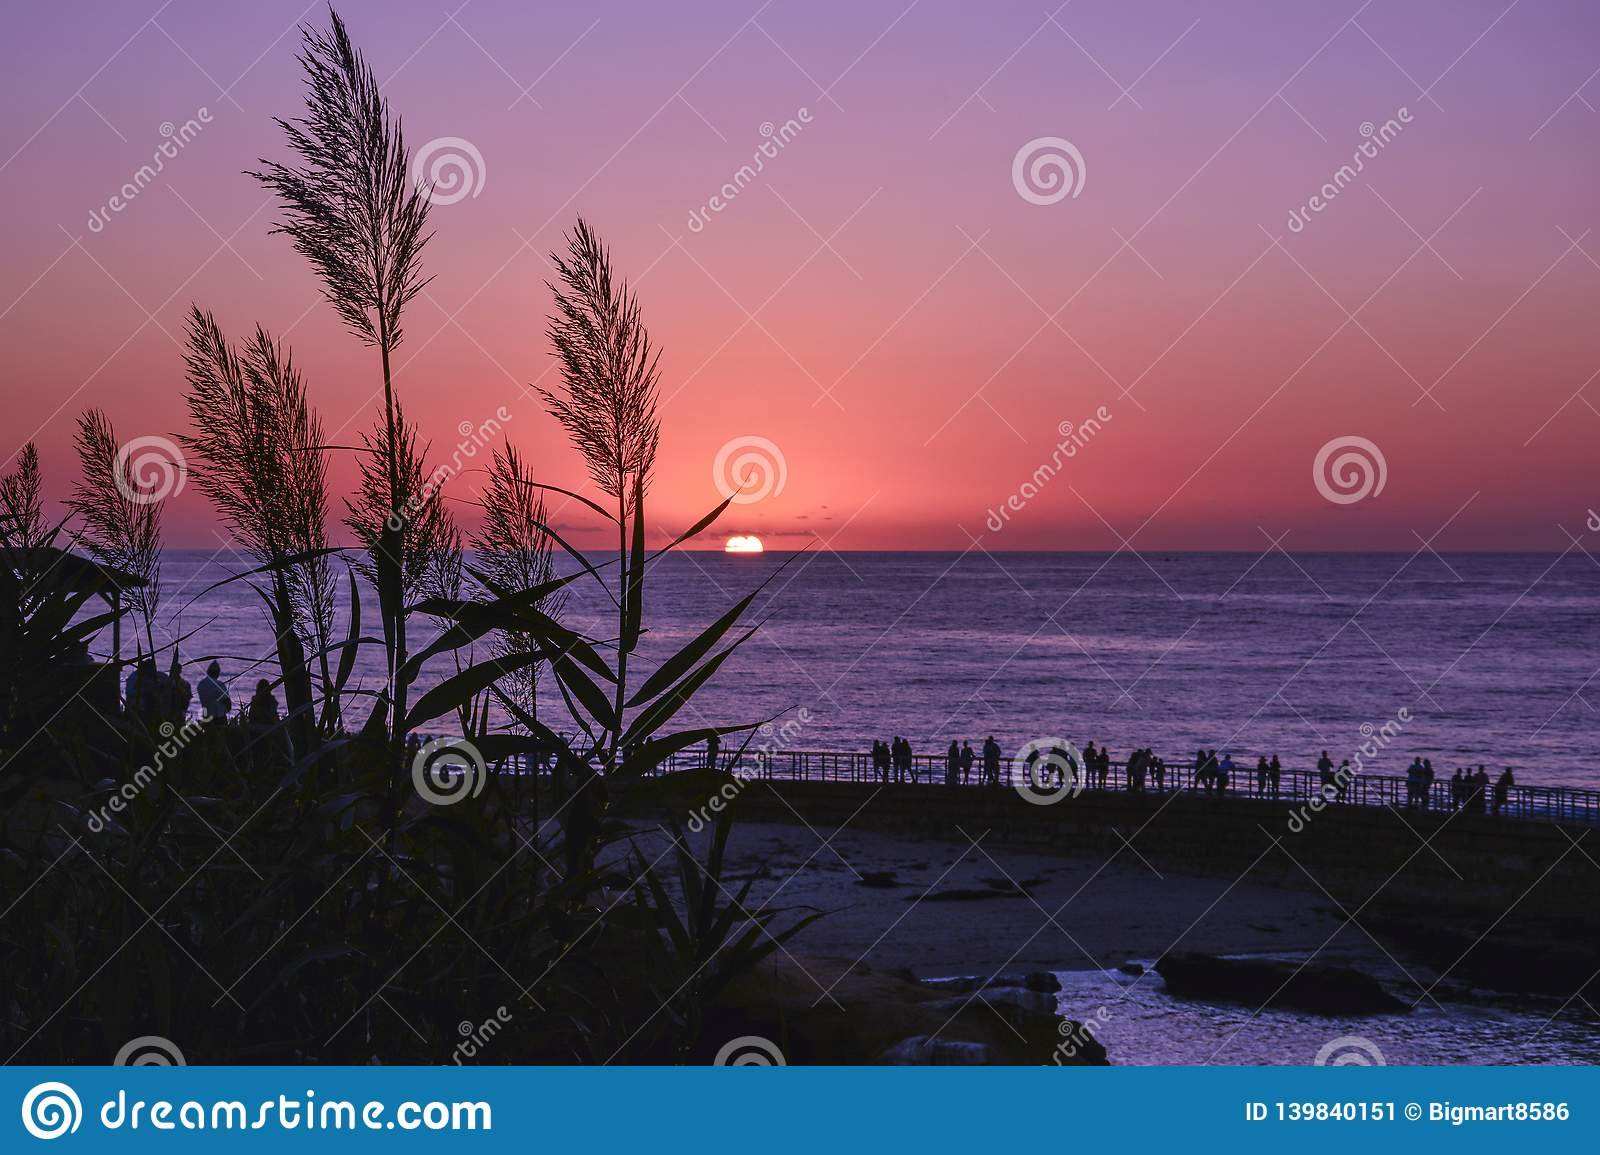 Scenic Sunset With Beautiful Tall Grass In Front And People In Pier Stock Image Image Of Amazin Sunset 139840151